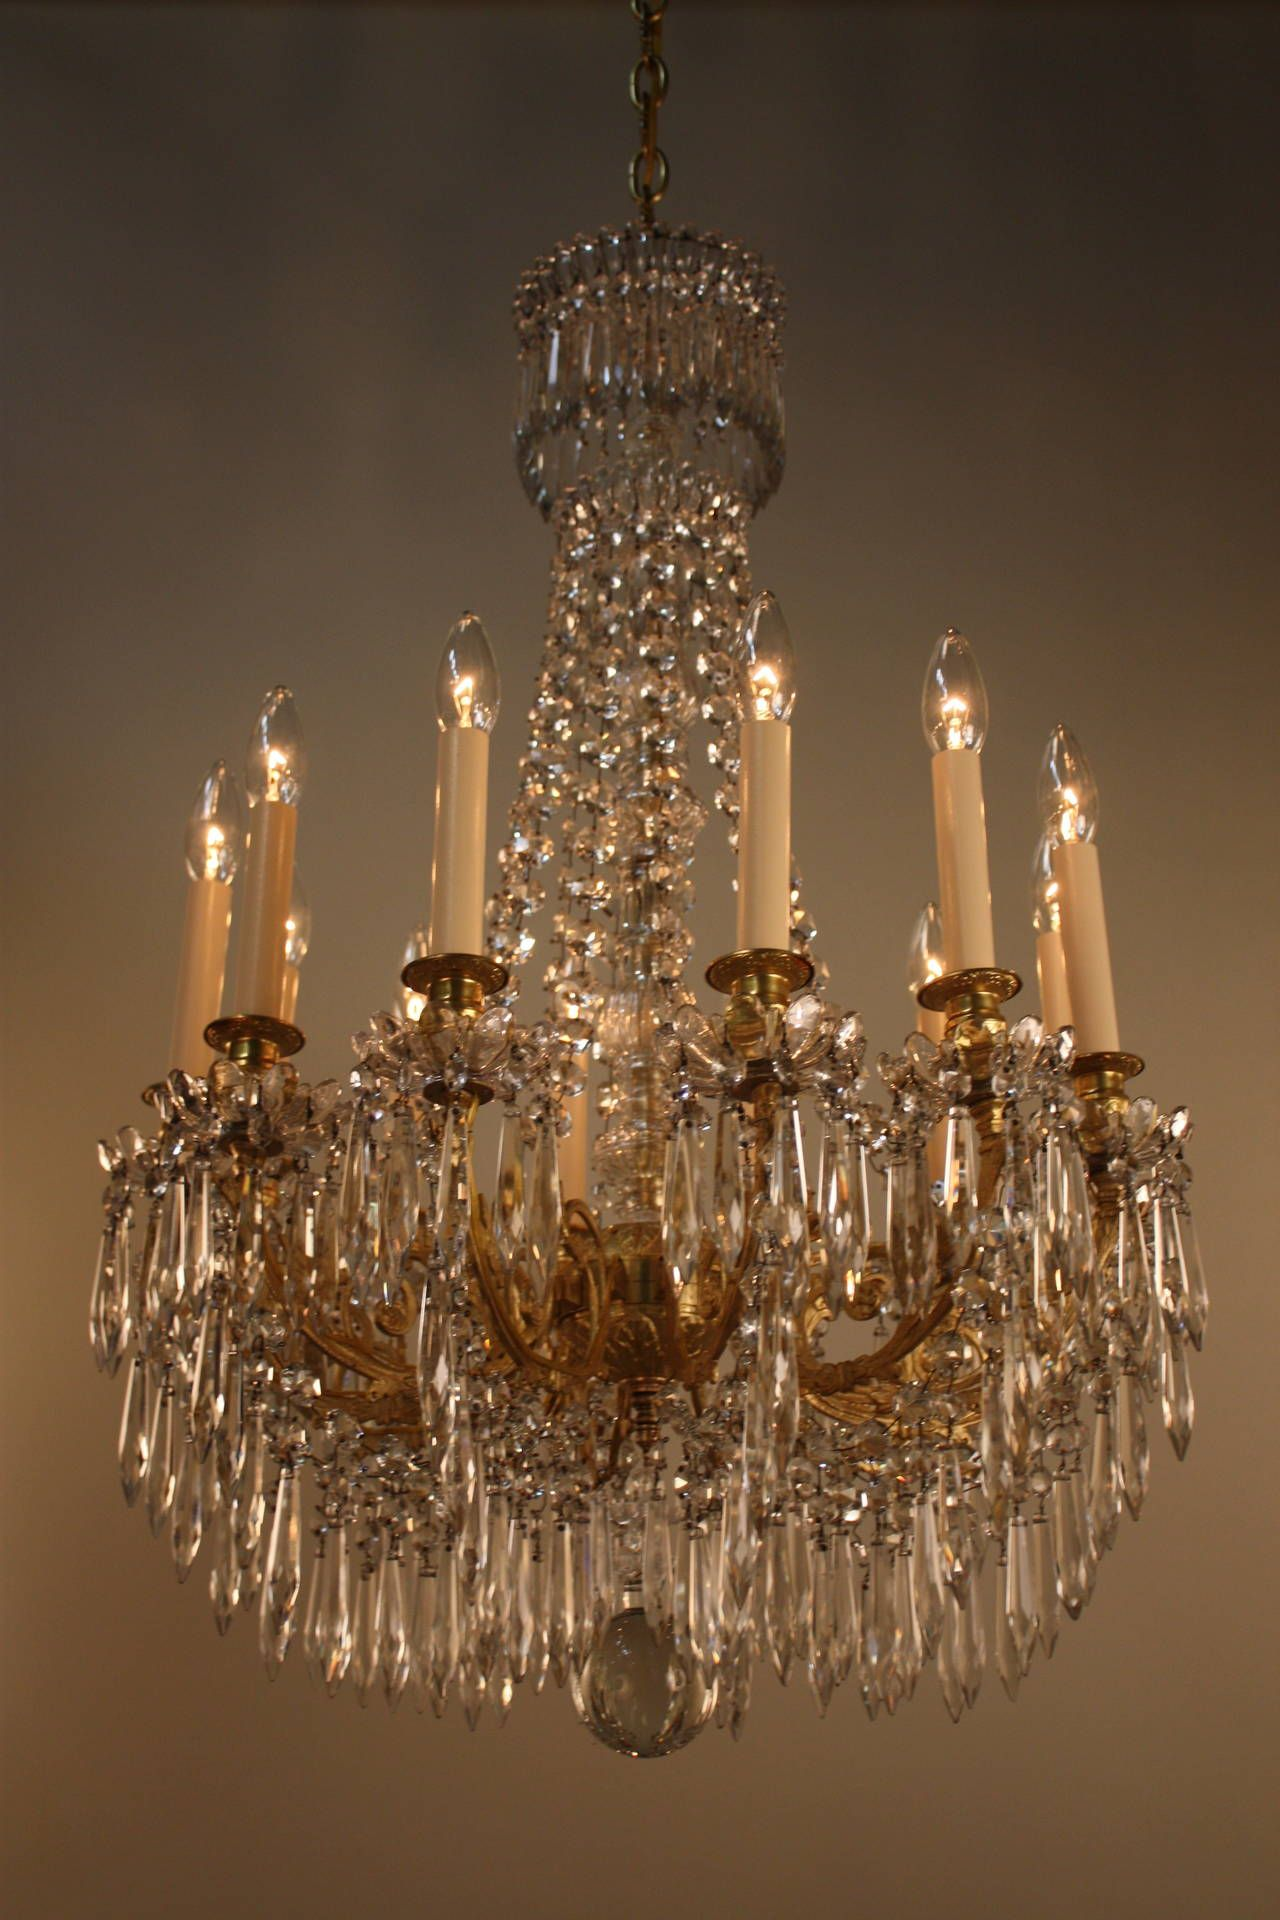 19th Century French Crystal Chandelier From A Unique Collection Of Antique And Modern Chandeliers Pendants At